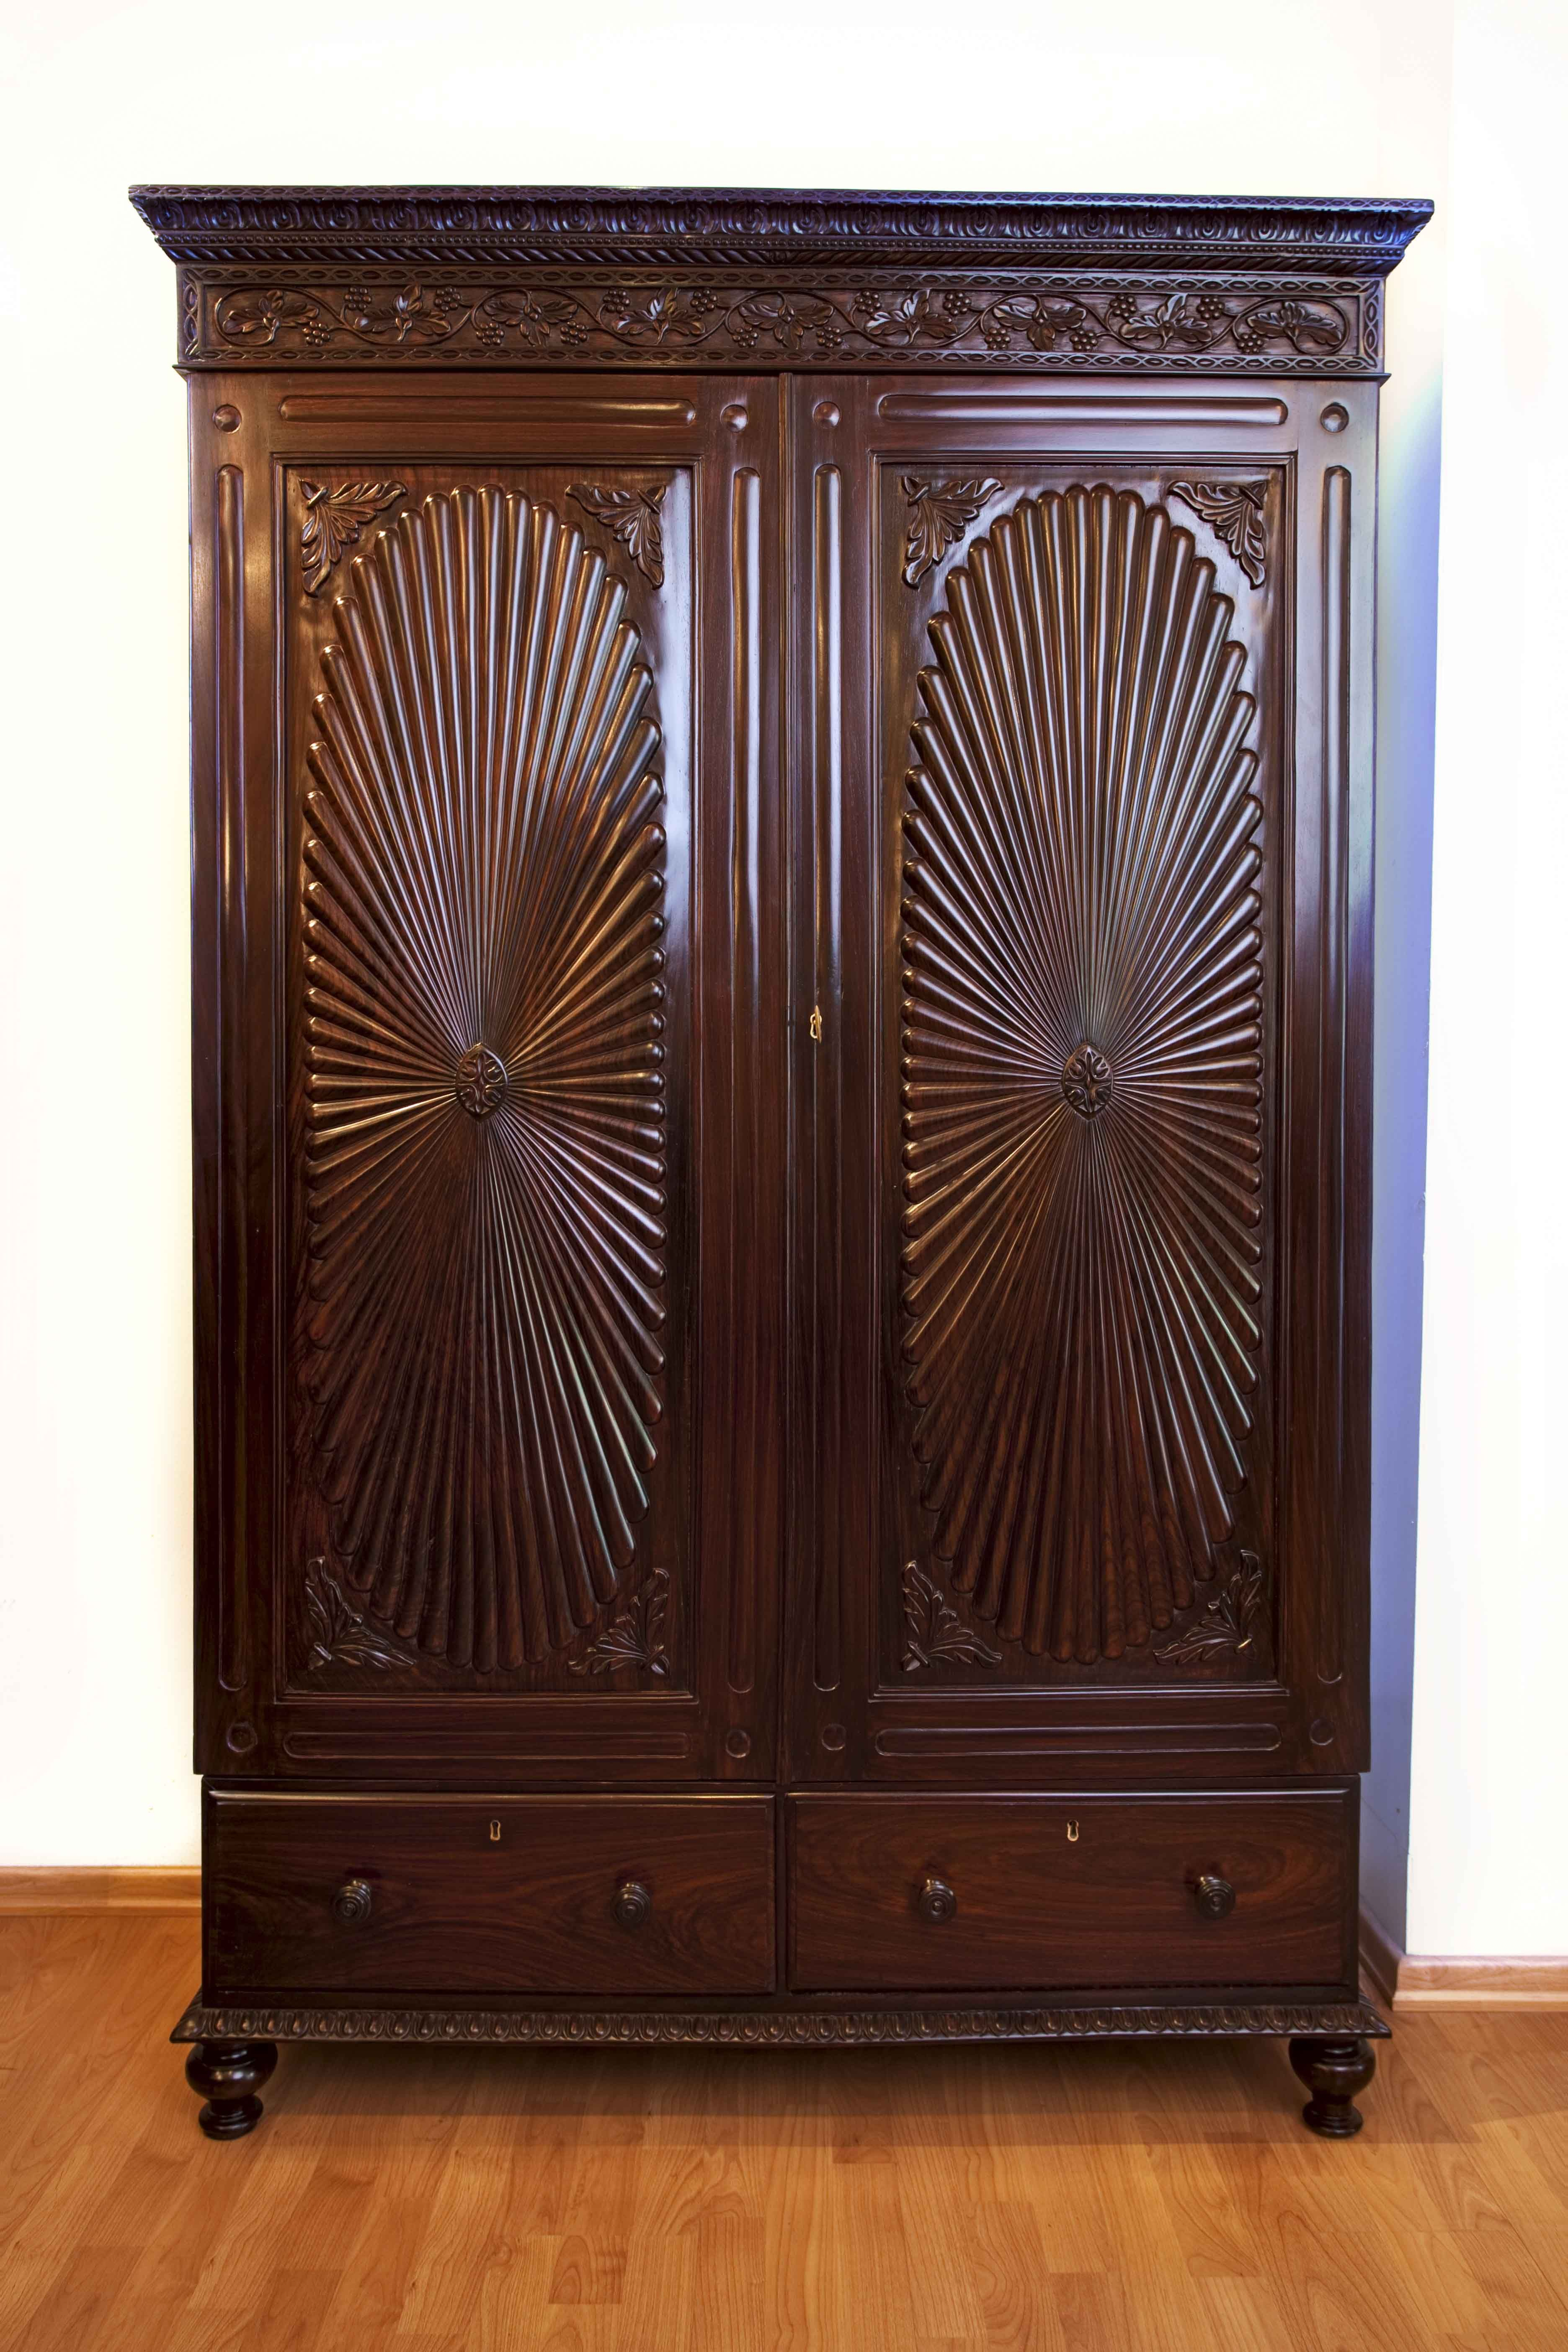 A British colonial rosewood cupboard with Fleur de Lys carving on